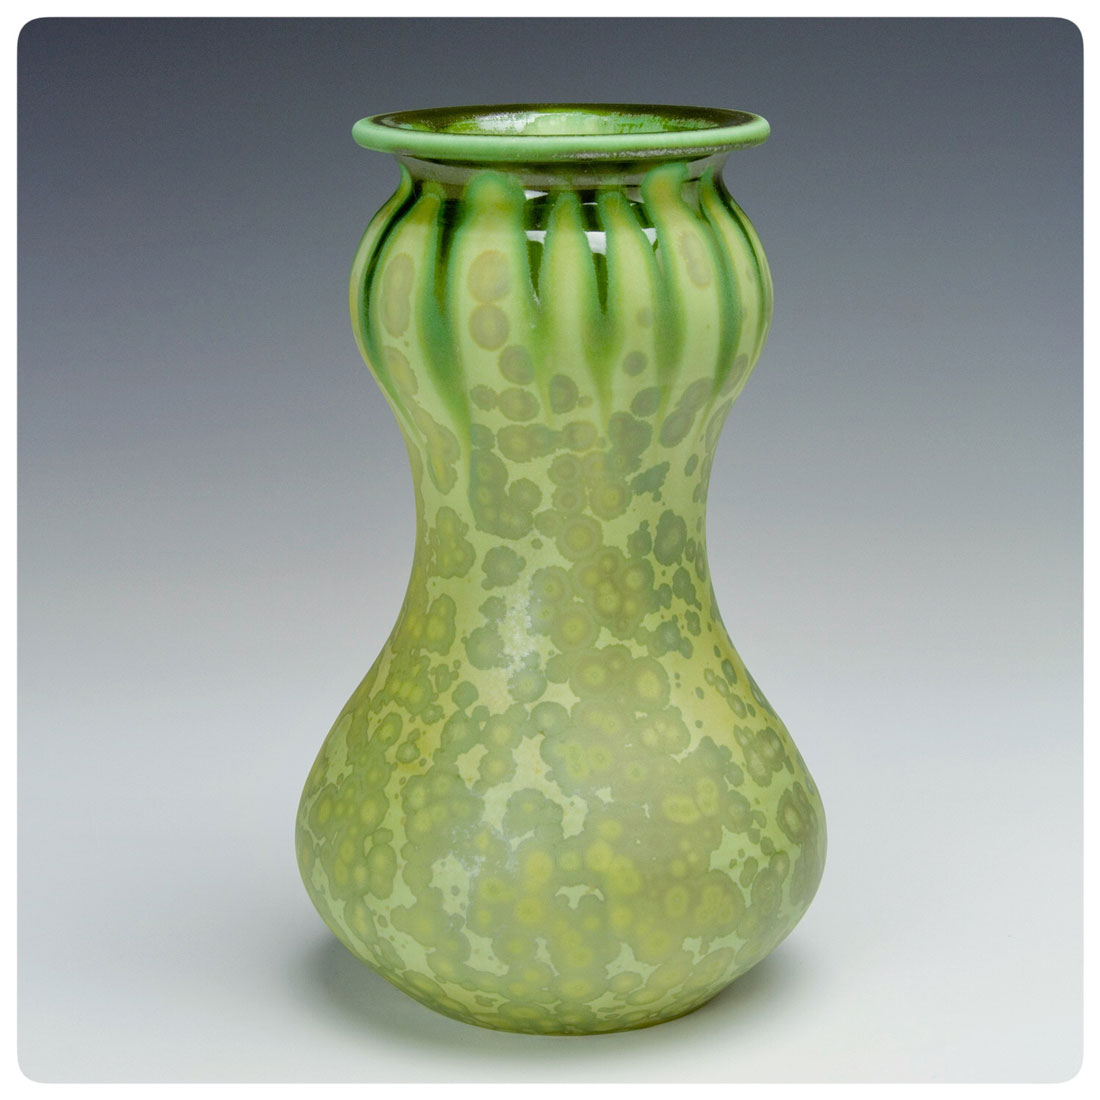 Matte Crystalline Gourd Vase, Bruce Gholson, Bulldog Pottery, Seagrove, North Carolina